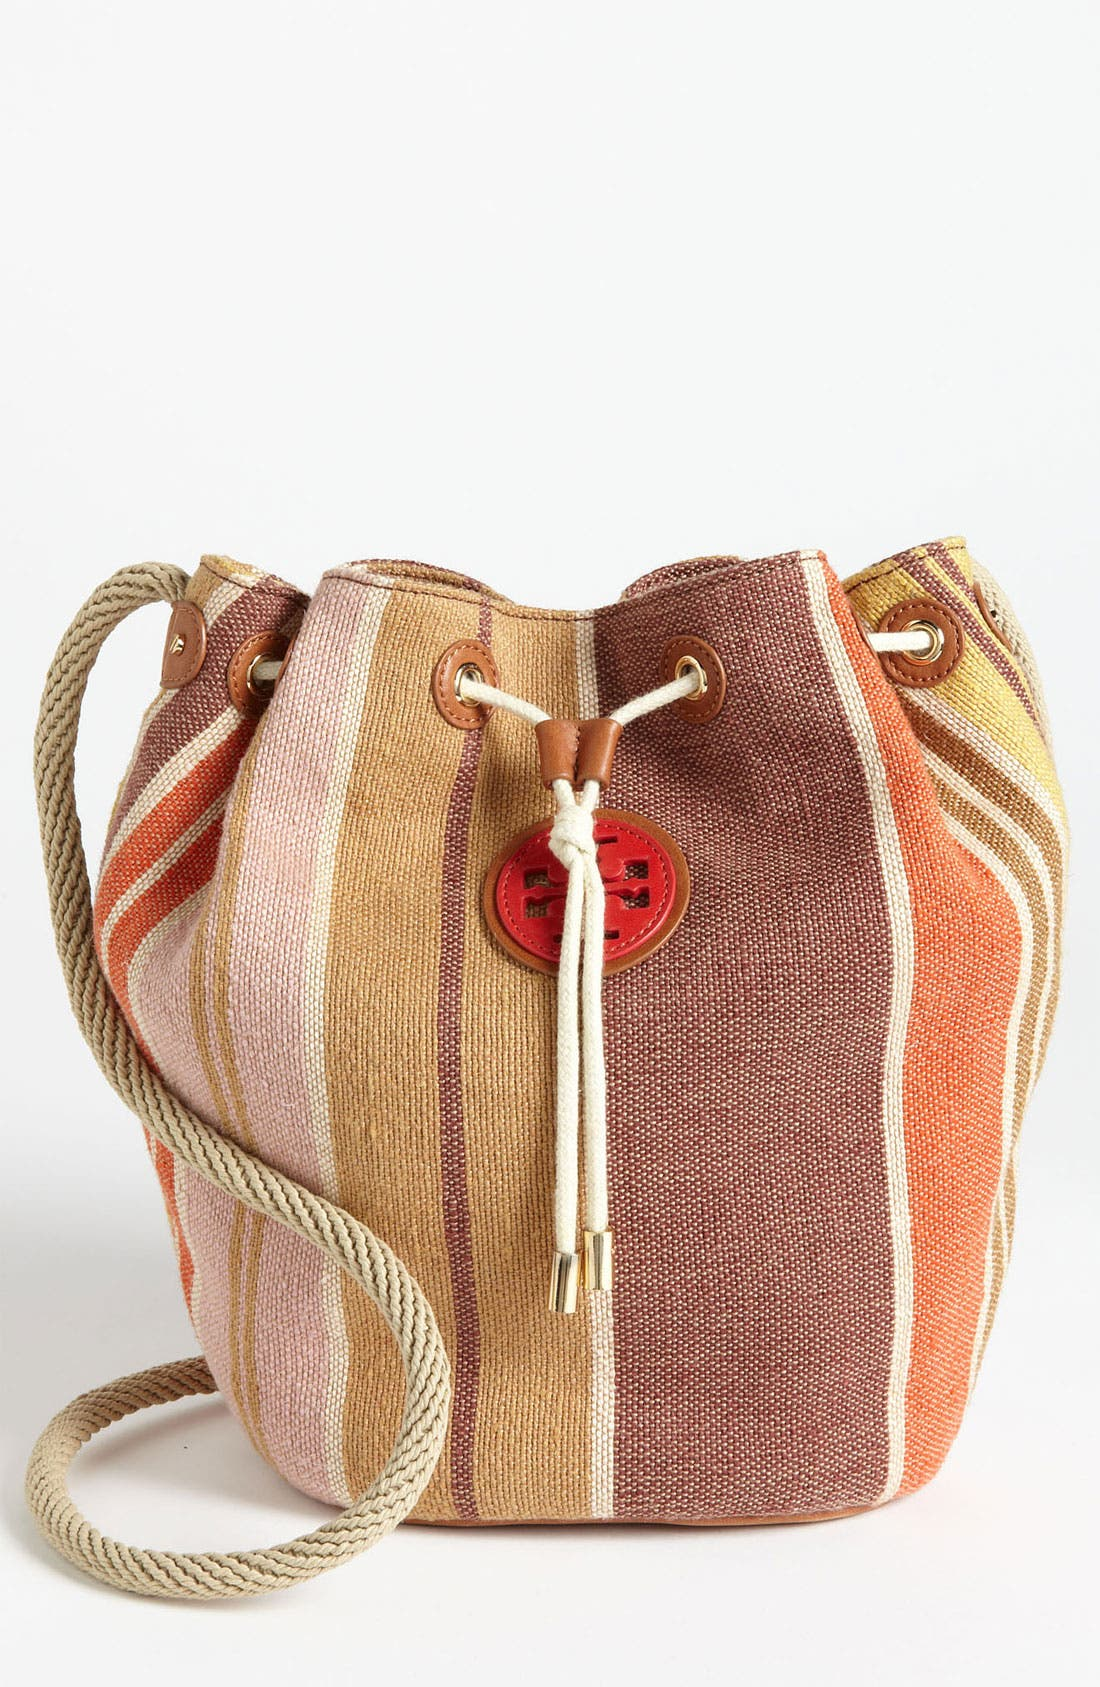 Main Image - Tory Burch 'Baja' Drawstring Crossbody Bag